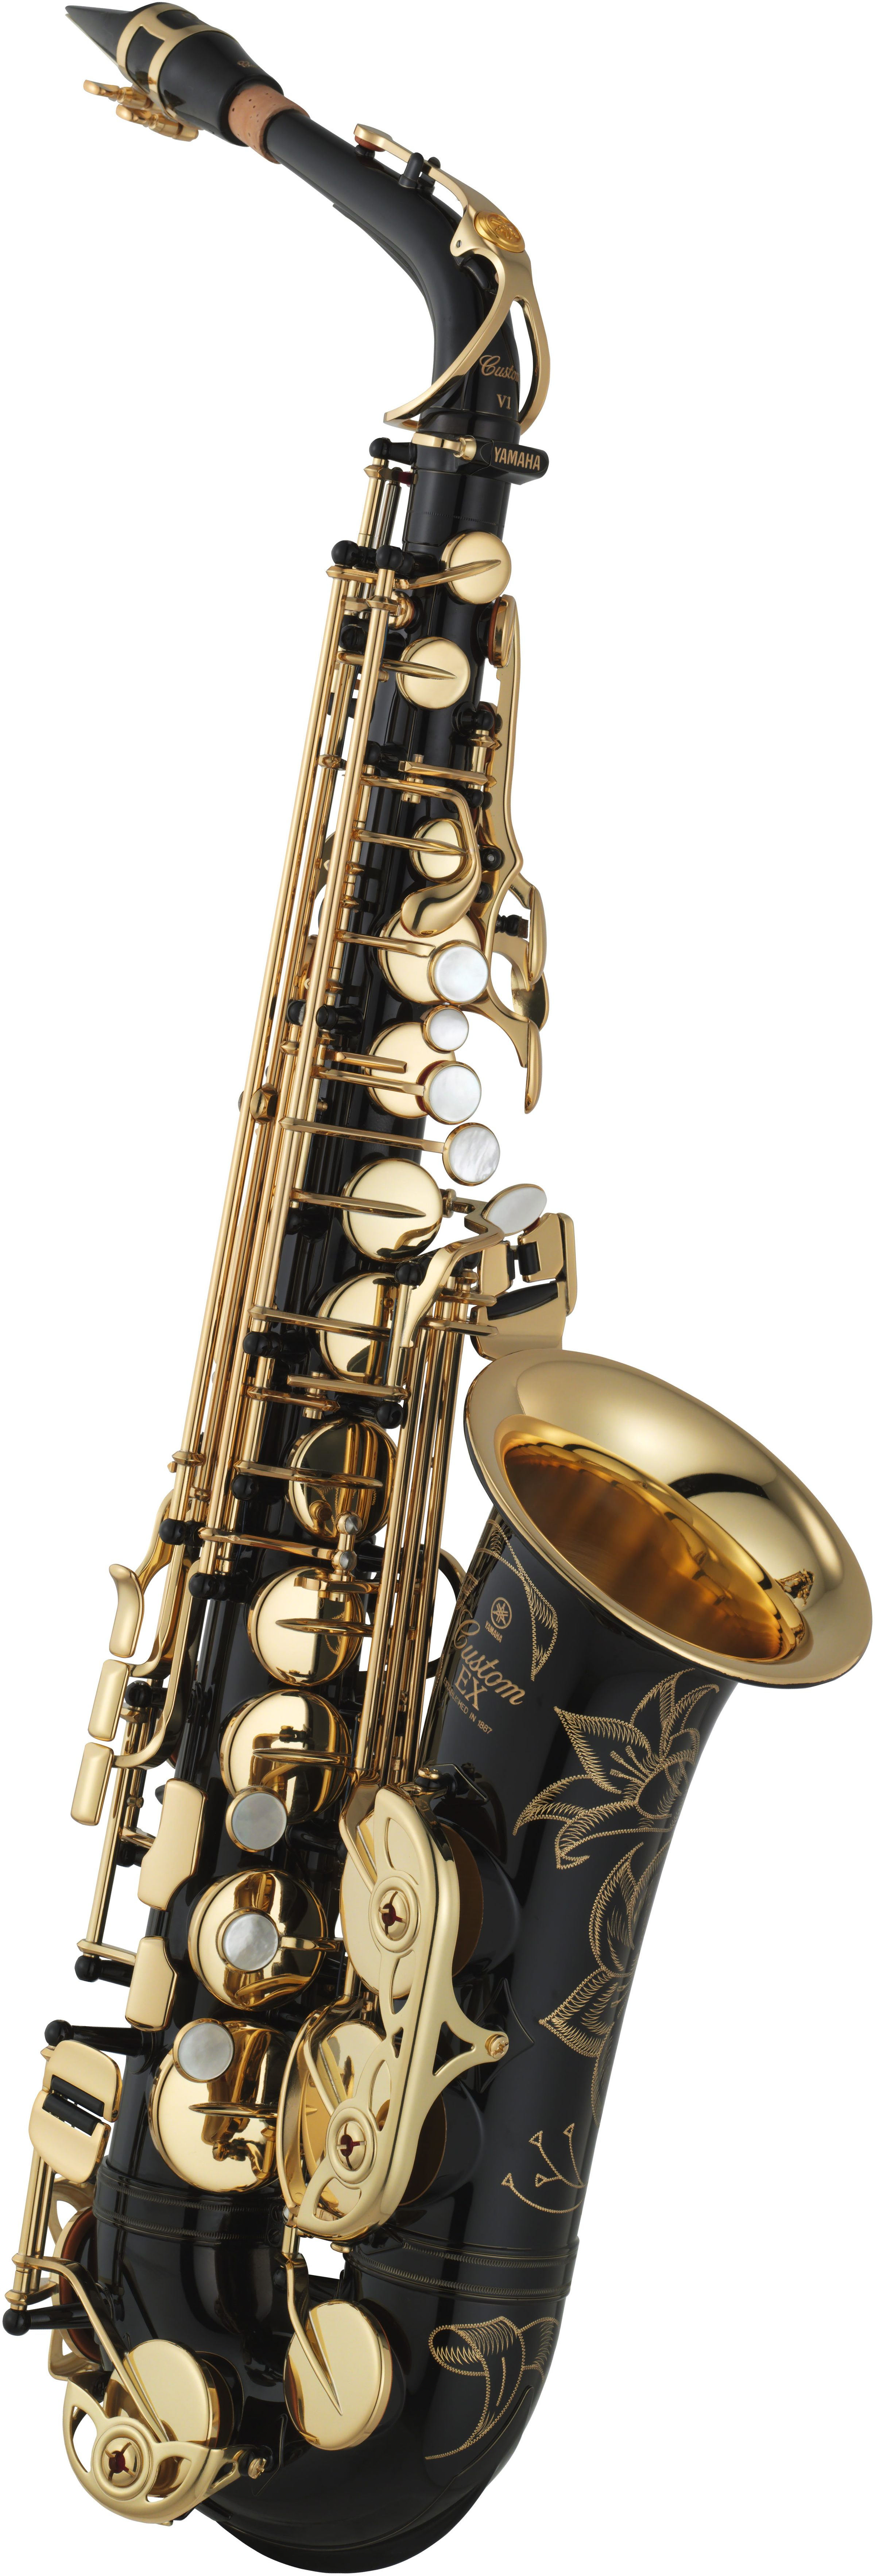 yas 875ex overview saxophones brass woodwinds musical instruments products yamaha. Black Bedroom Furniture Sets. Home Design Ideas